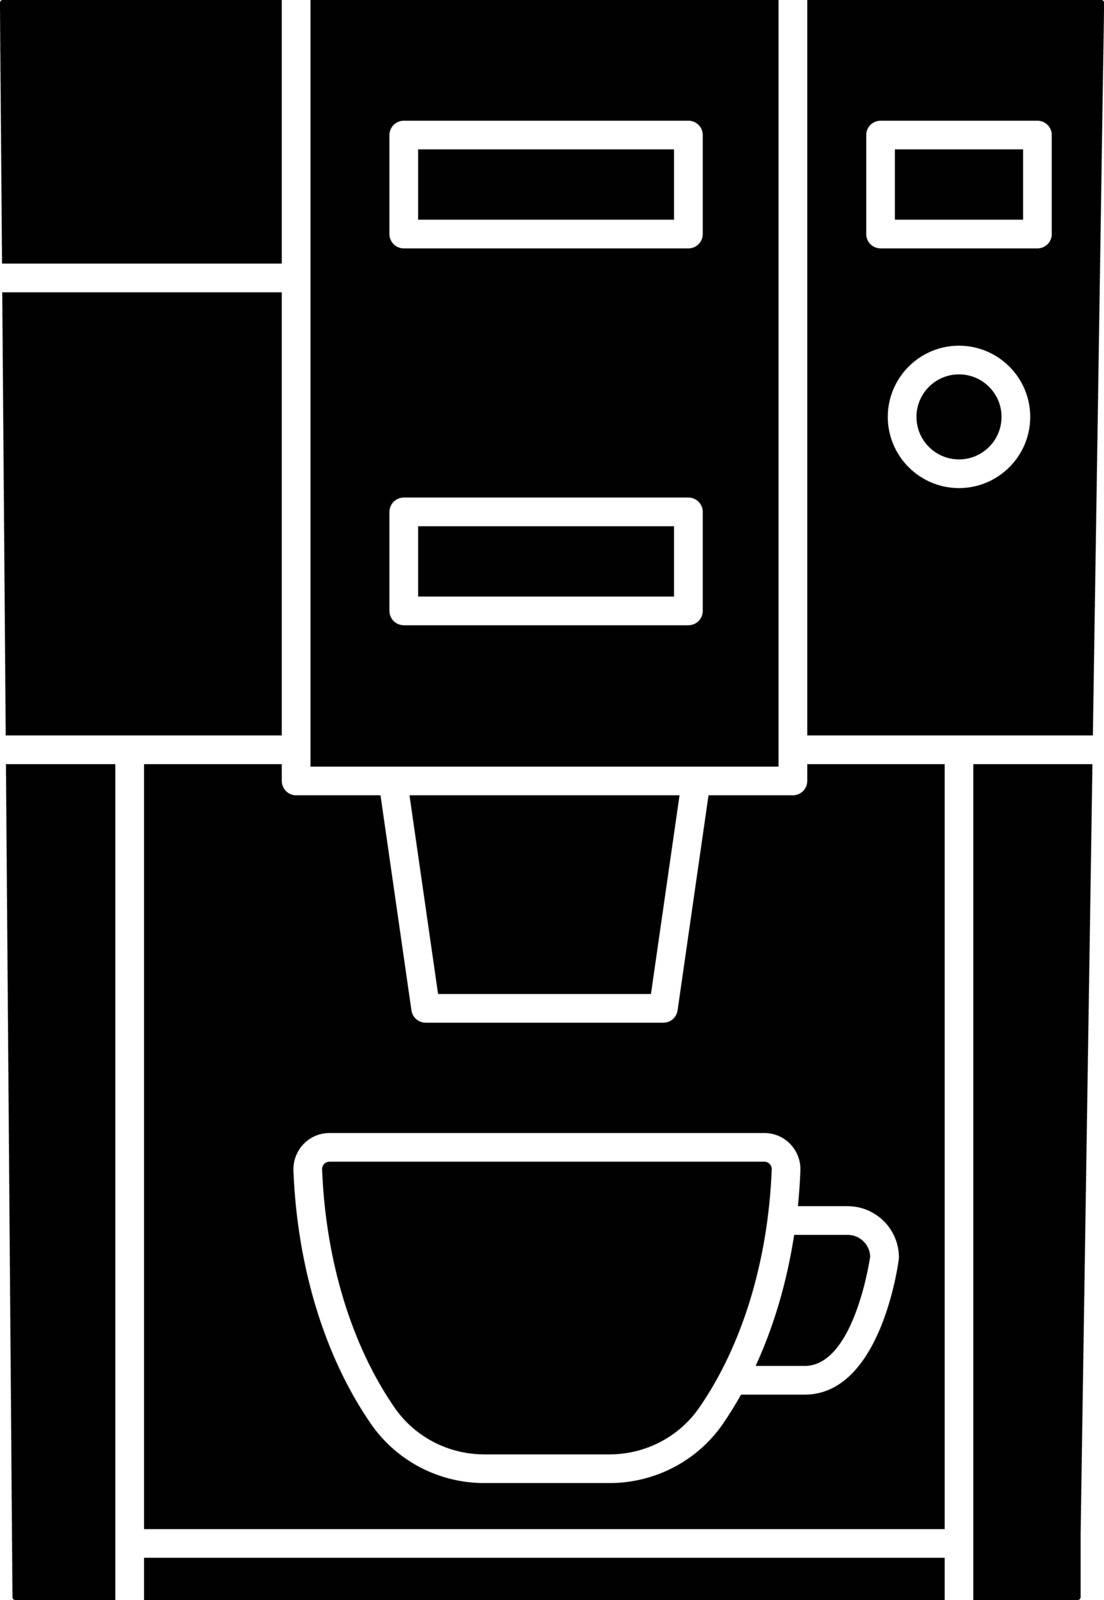 Coffee machine glyph icon. Electric coffeemaker. Coffee house or cafe appliance. Silhouette symbol. Negative space. Vector isolated illustration